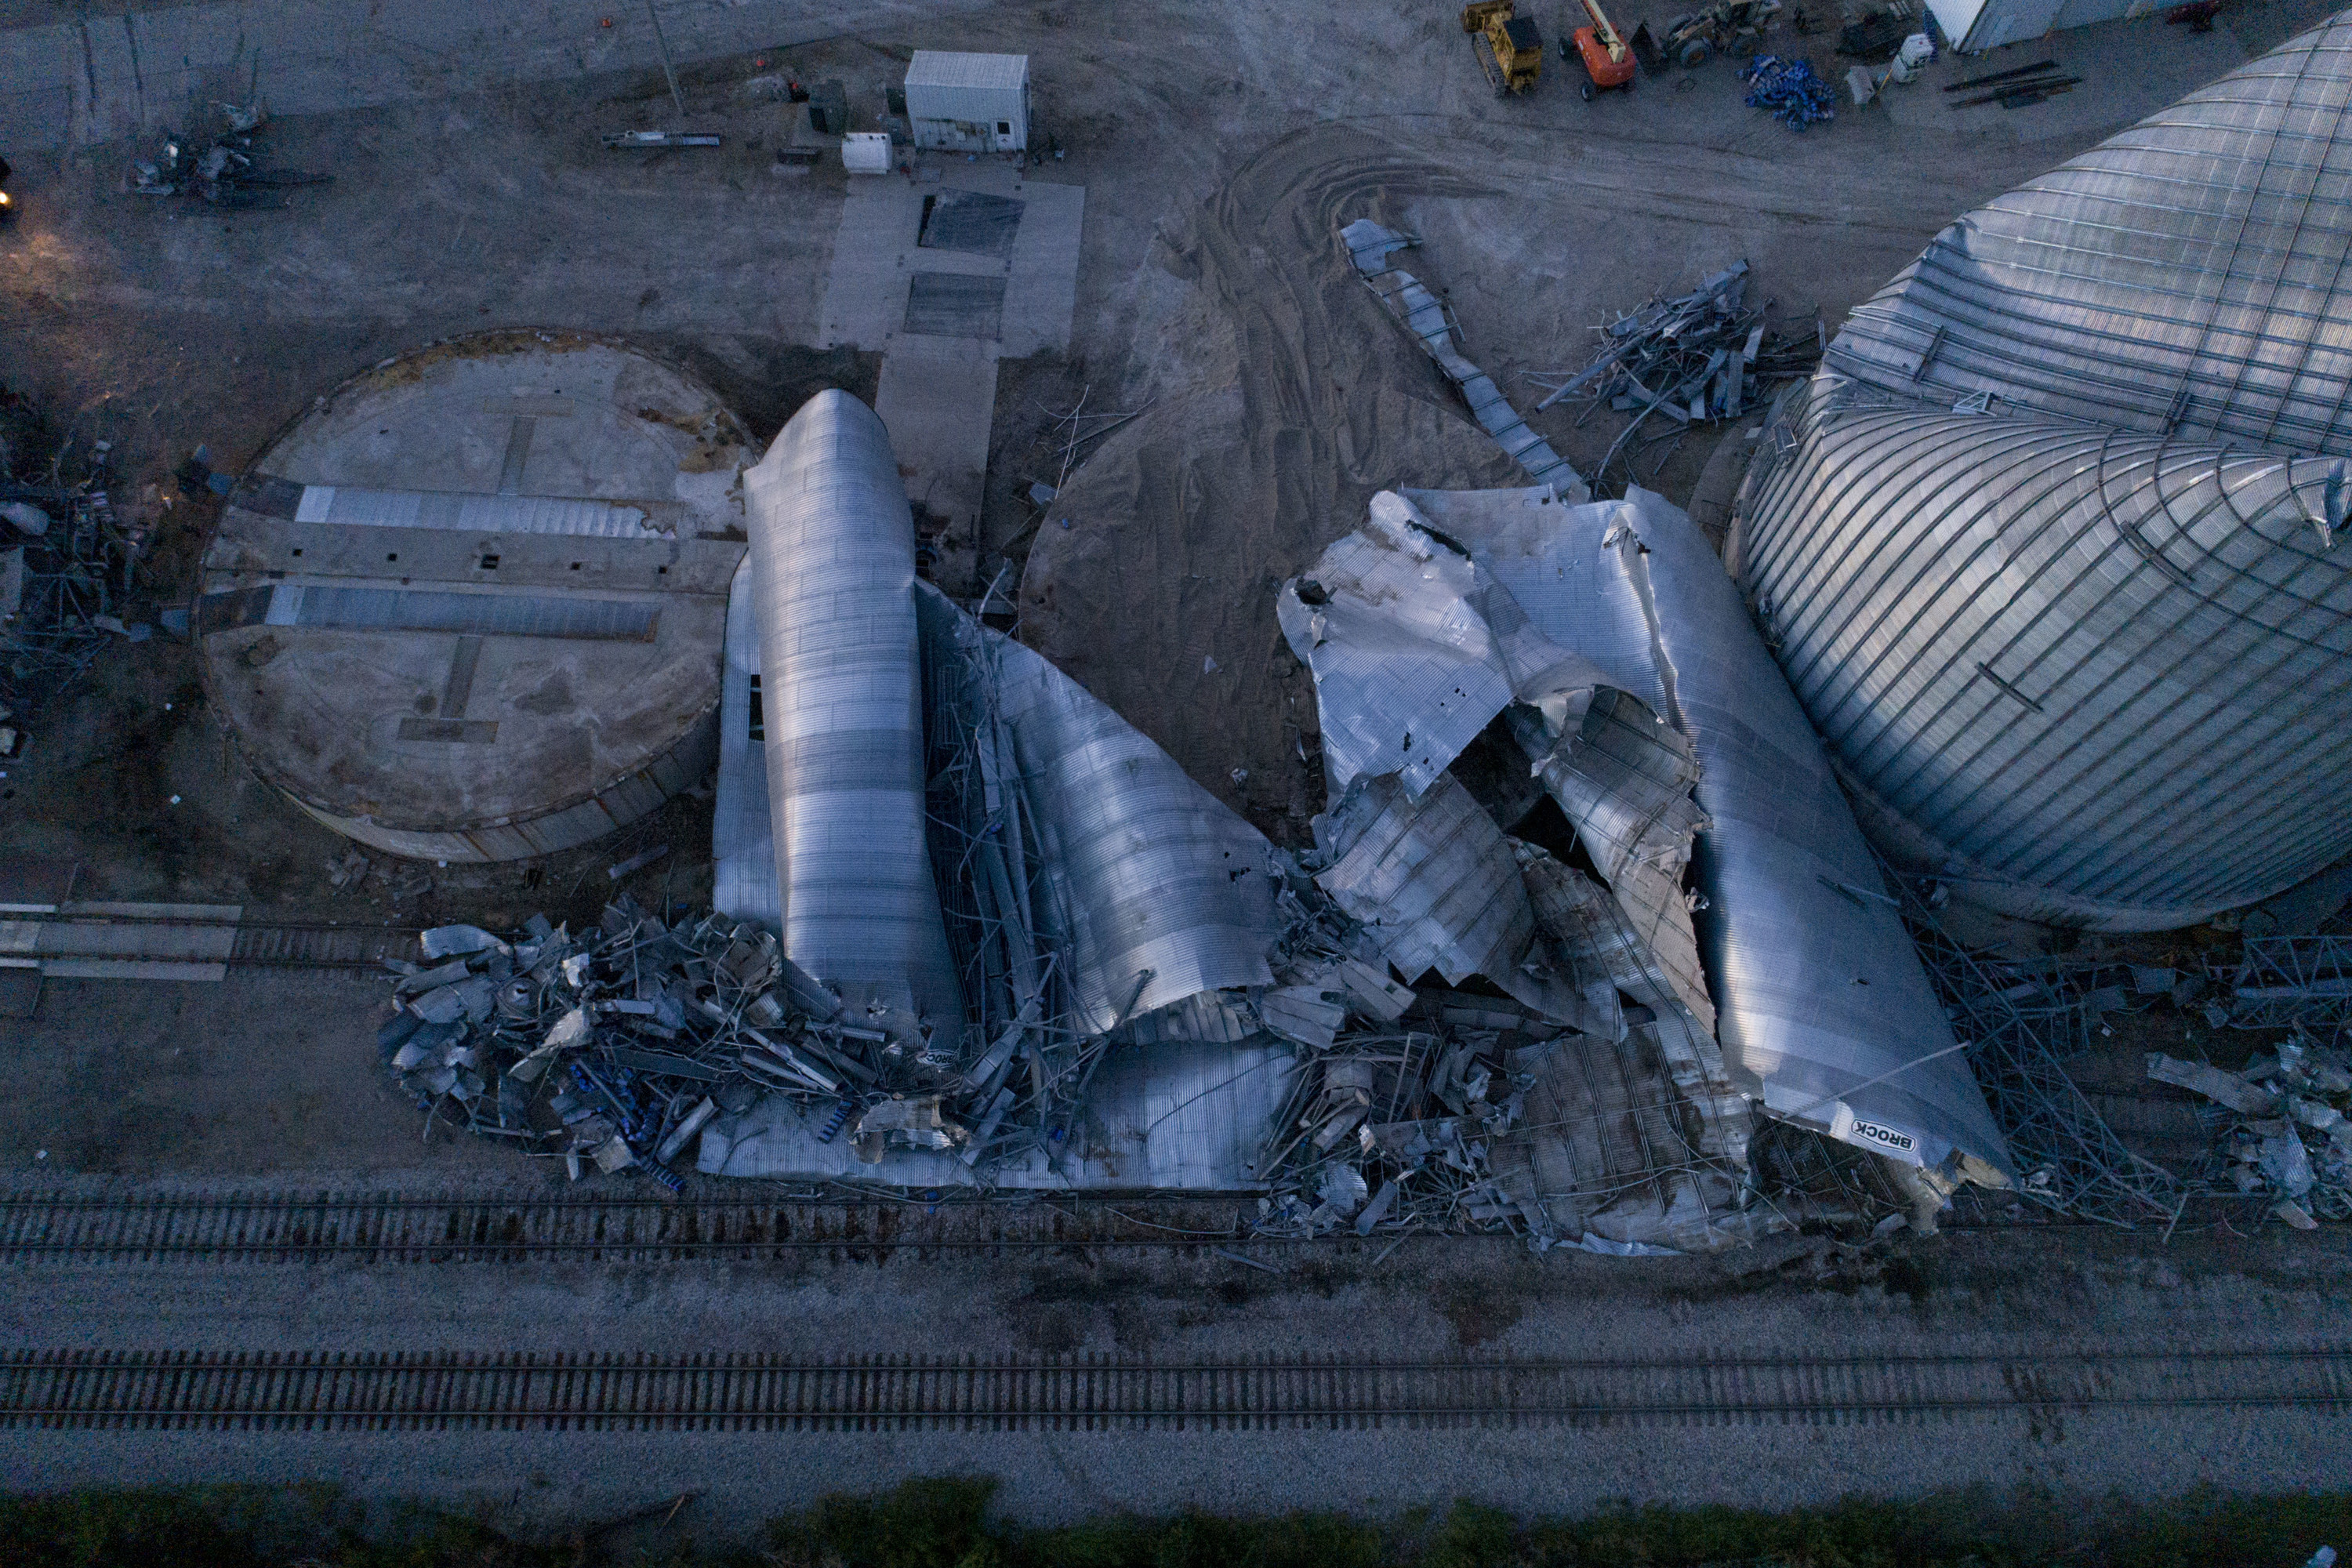 A row of mangled grain silos collapsed on the ground